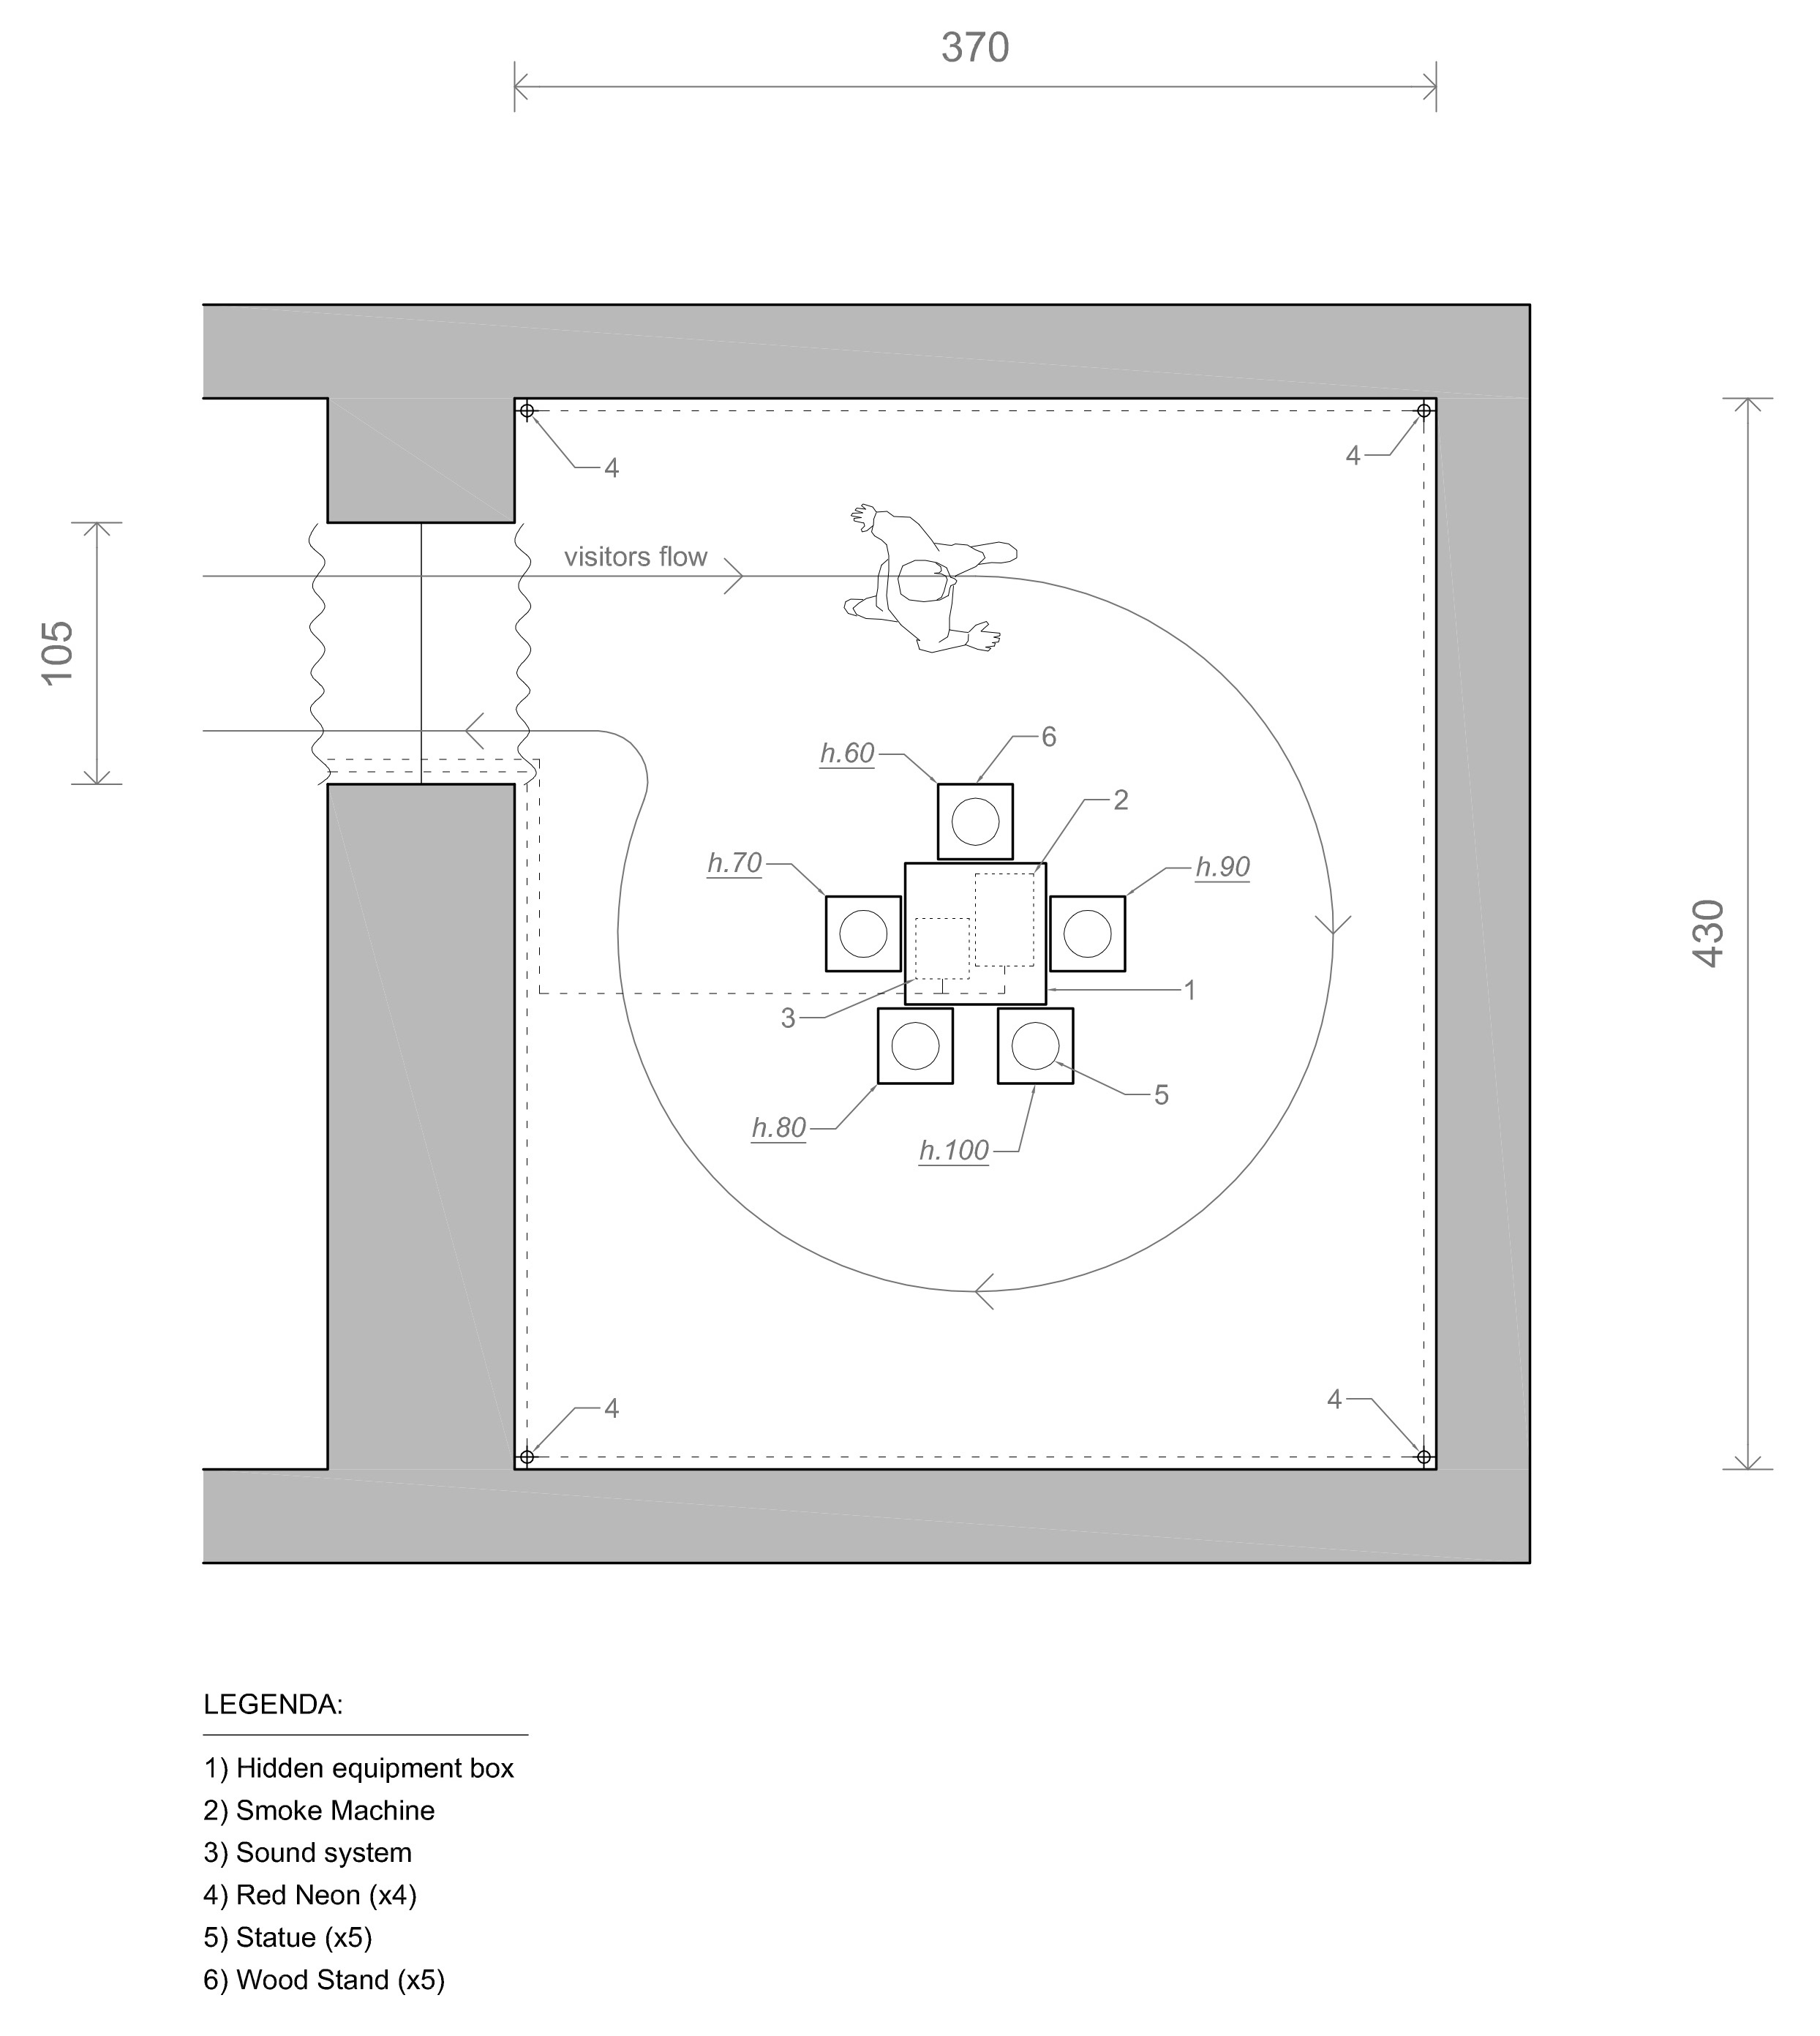 Room planning and design of the immersive installation